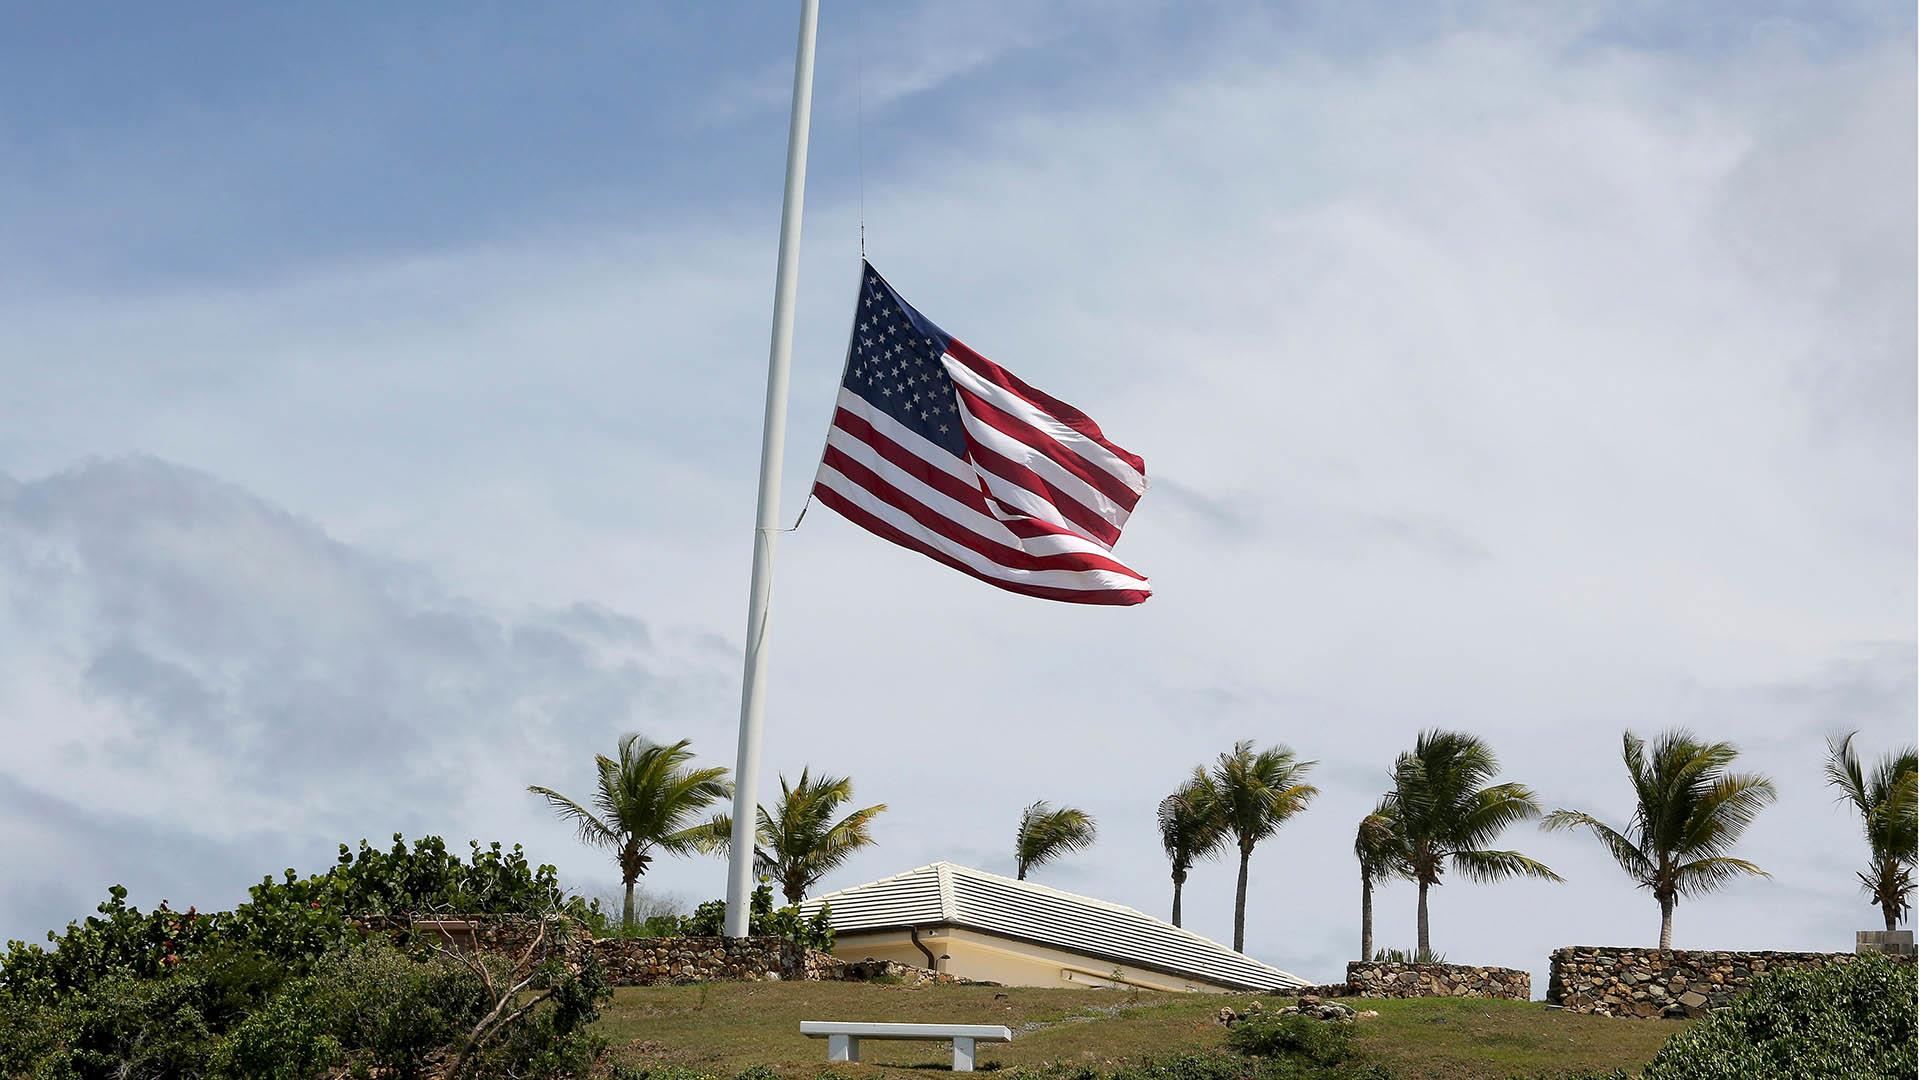 American flags on Jeffrey Epstein's private islands lowered to half-staff